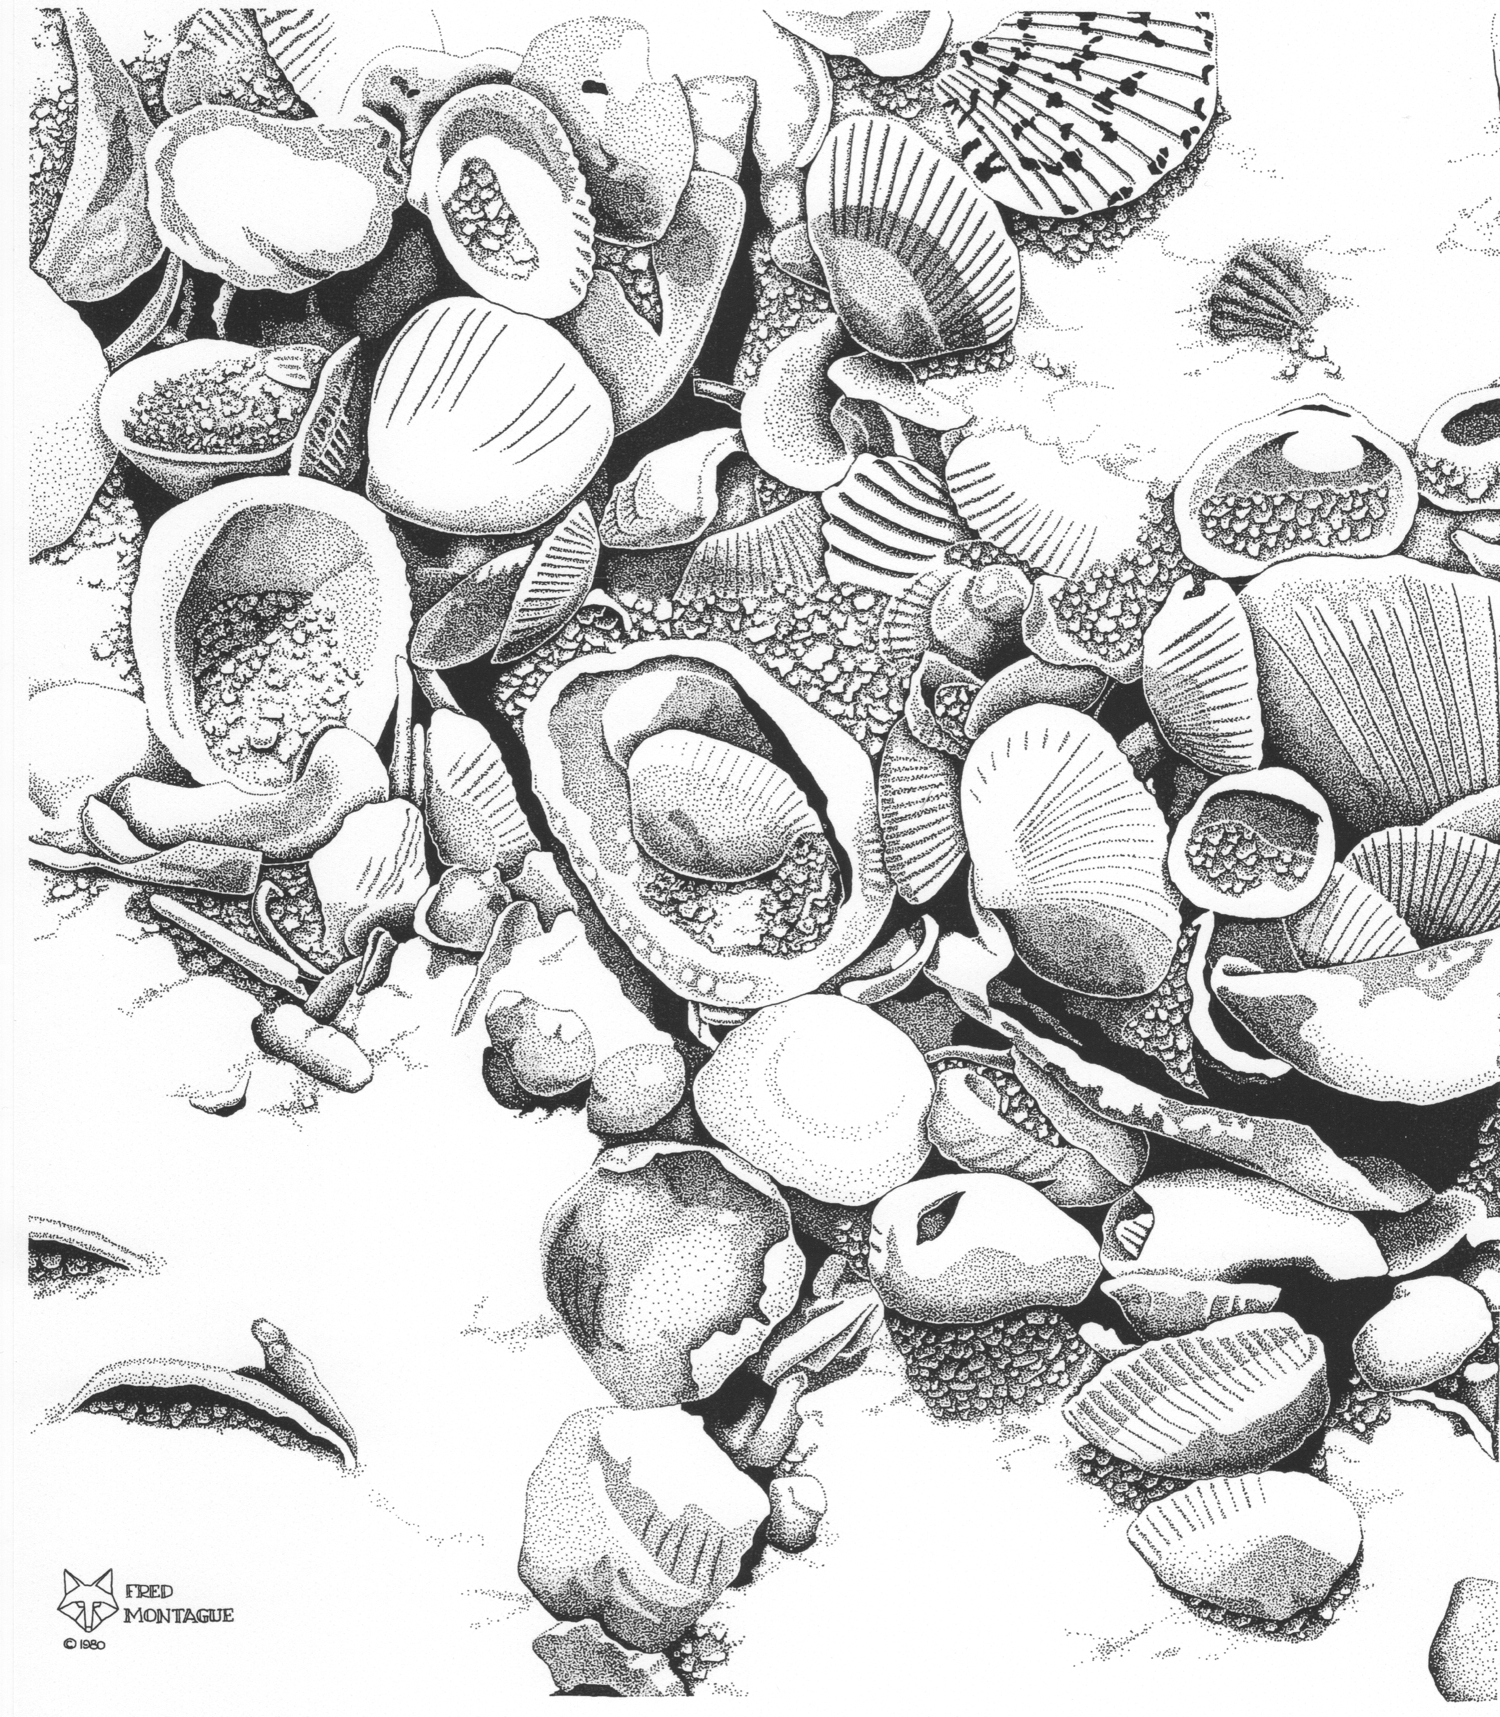 Shell Study II • © Fred Montague  $65 • Photolithograph • Image 14 x 17   matted 20 x 24   Edition size: 200 • status: available